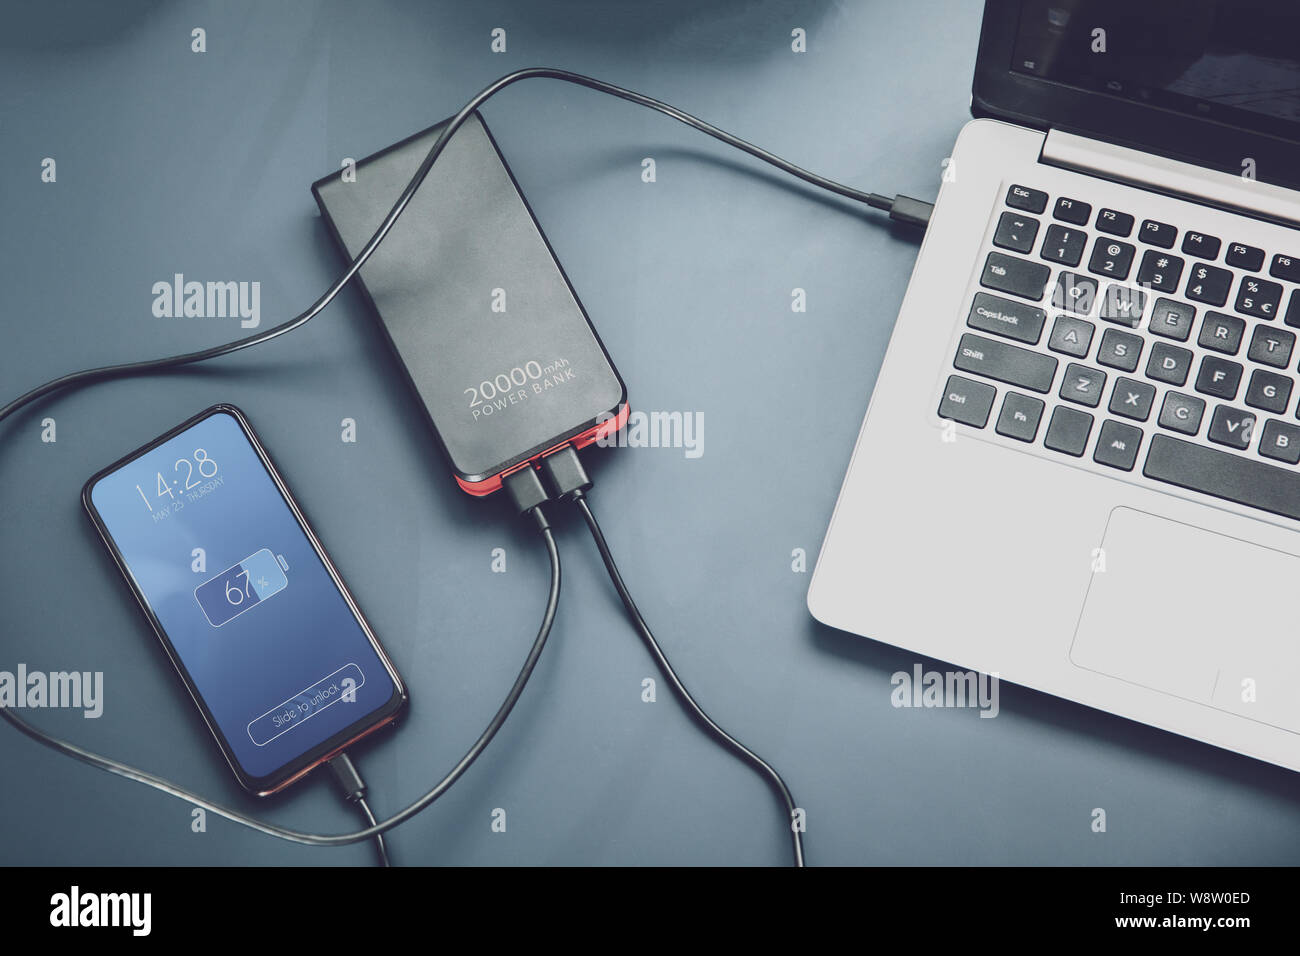 Powerfull power bank charges two devices at one time via USB-C connection. Interface on the screen was created in graphic program. Stock Photo